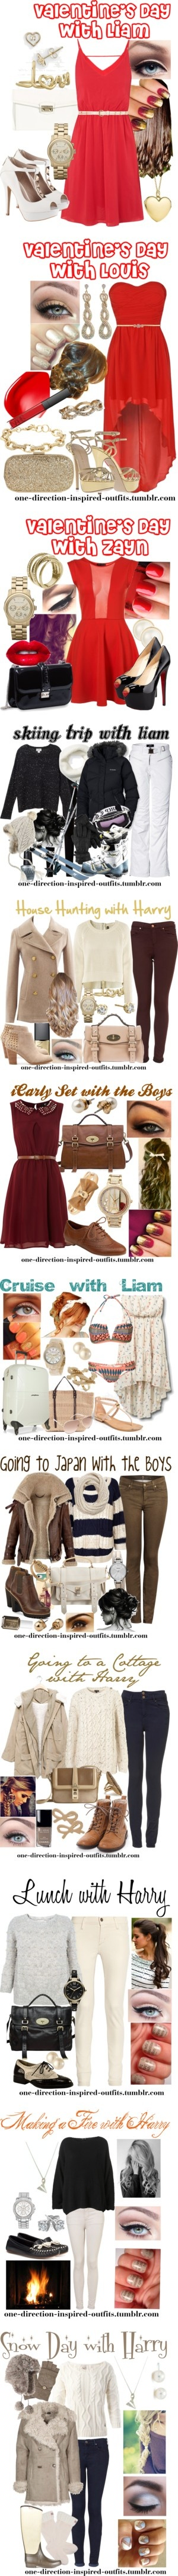 """One Direction Inspired Outfits and Imagines #2"" by one-direction-inspired-outfits ❤ liked on Polyvore"